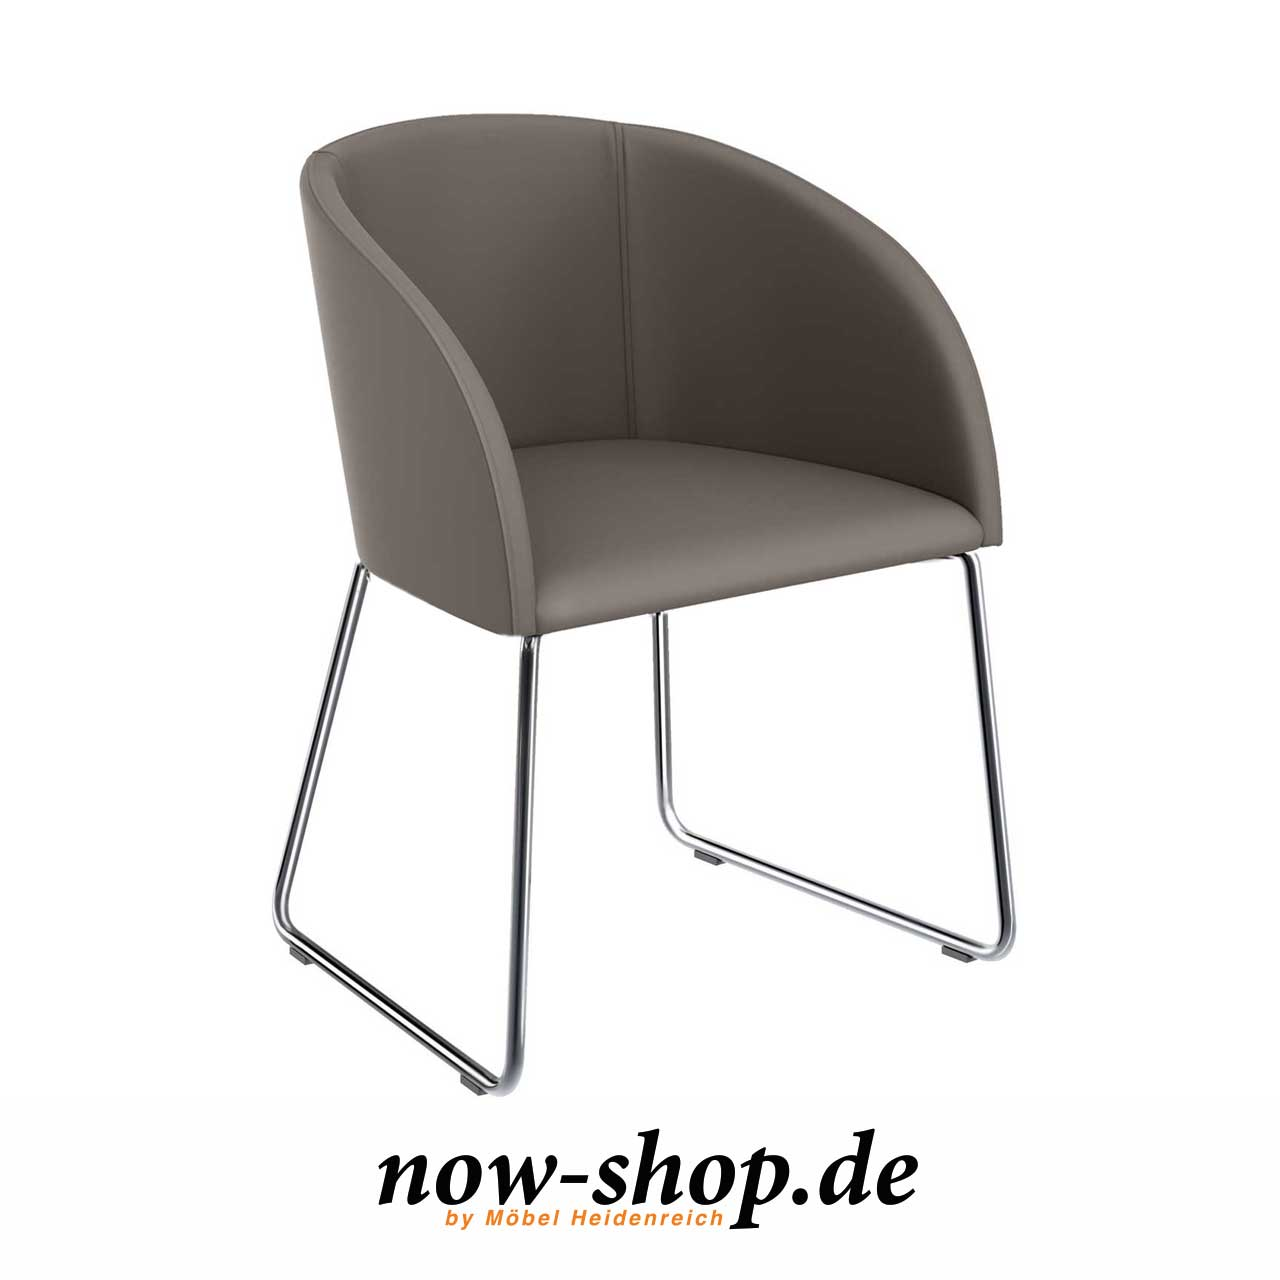 S19 by now25 hülsta – Stuhl 1 taupe CxdBoer